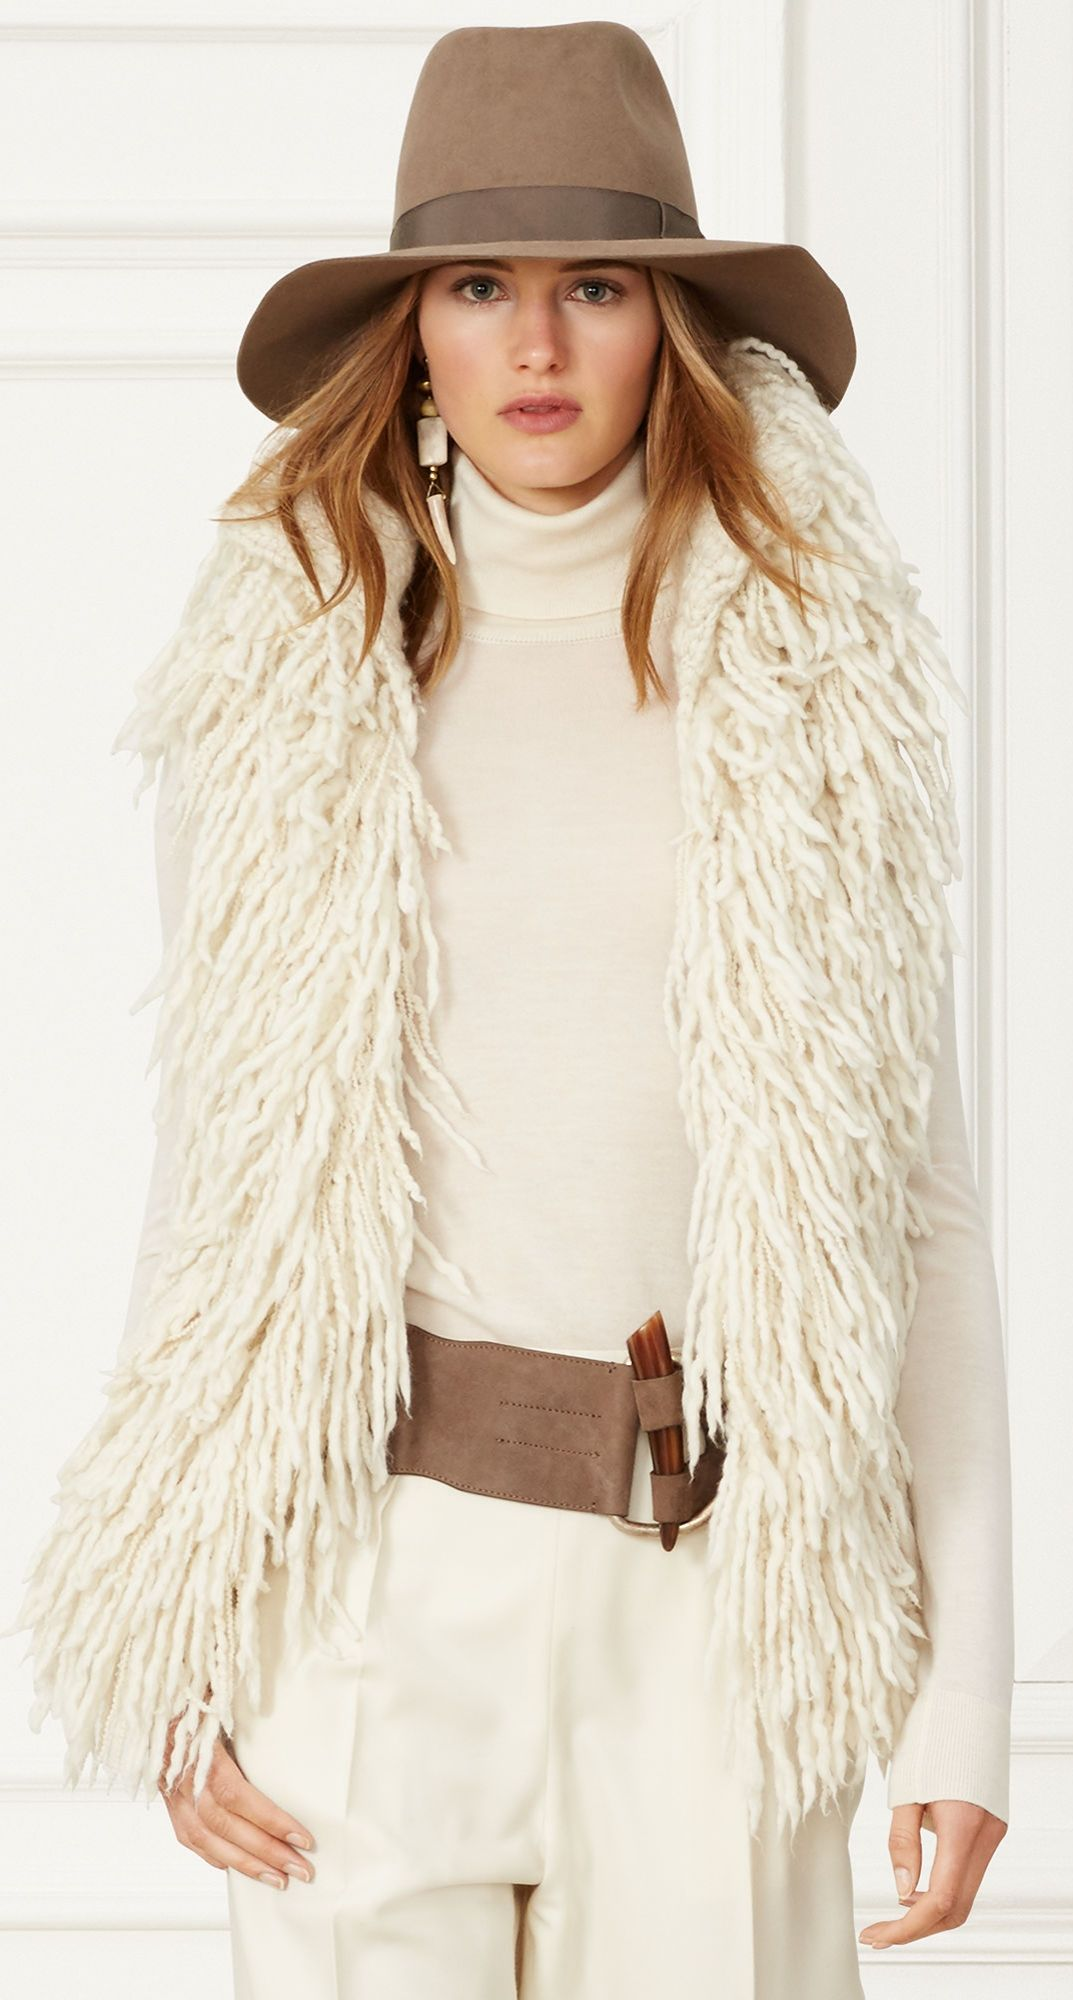 79bdc2e7cefca Ralph Lauren Fall 2015 Collection  This cream hand-knit vest has a  voluminous silhouette that makes it perfect for layering. Pair the luxe wool -and-cashmere ...